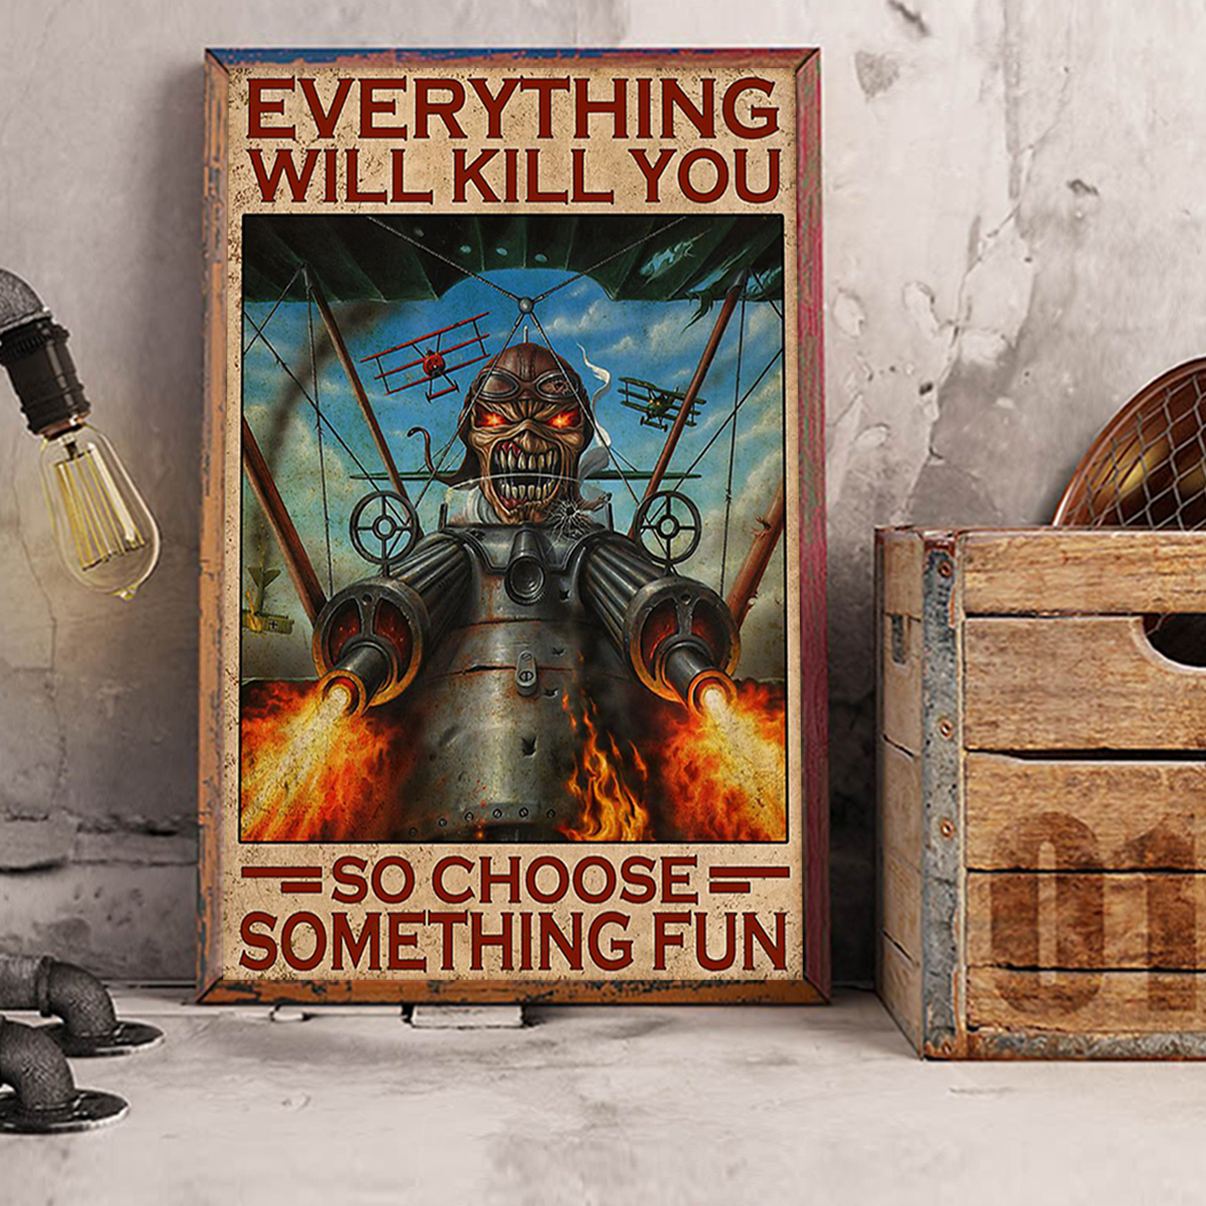 Iron maiden fighter pilot everything will kill you so choose something fun poster A2